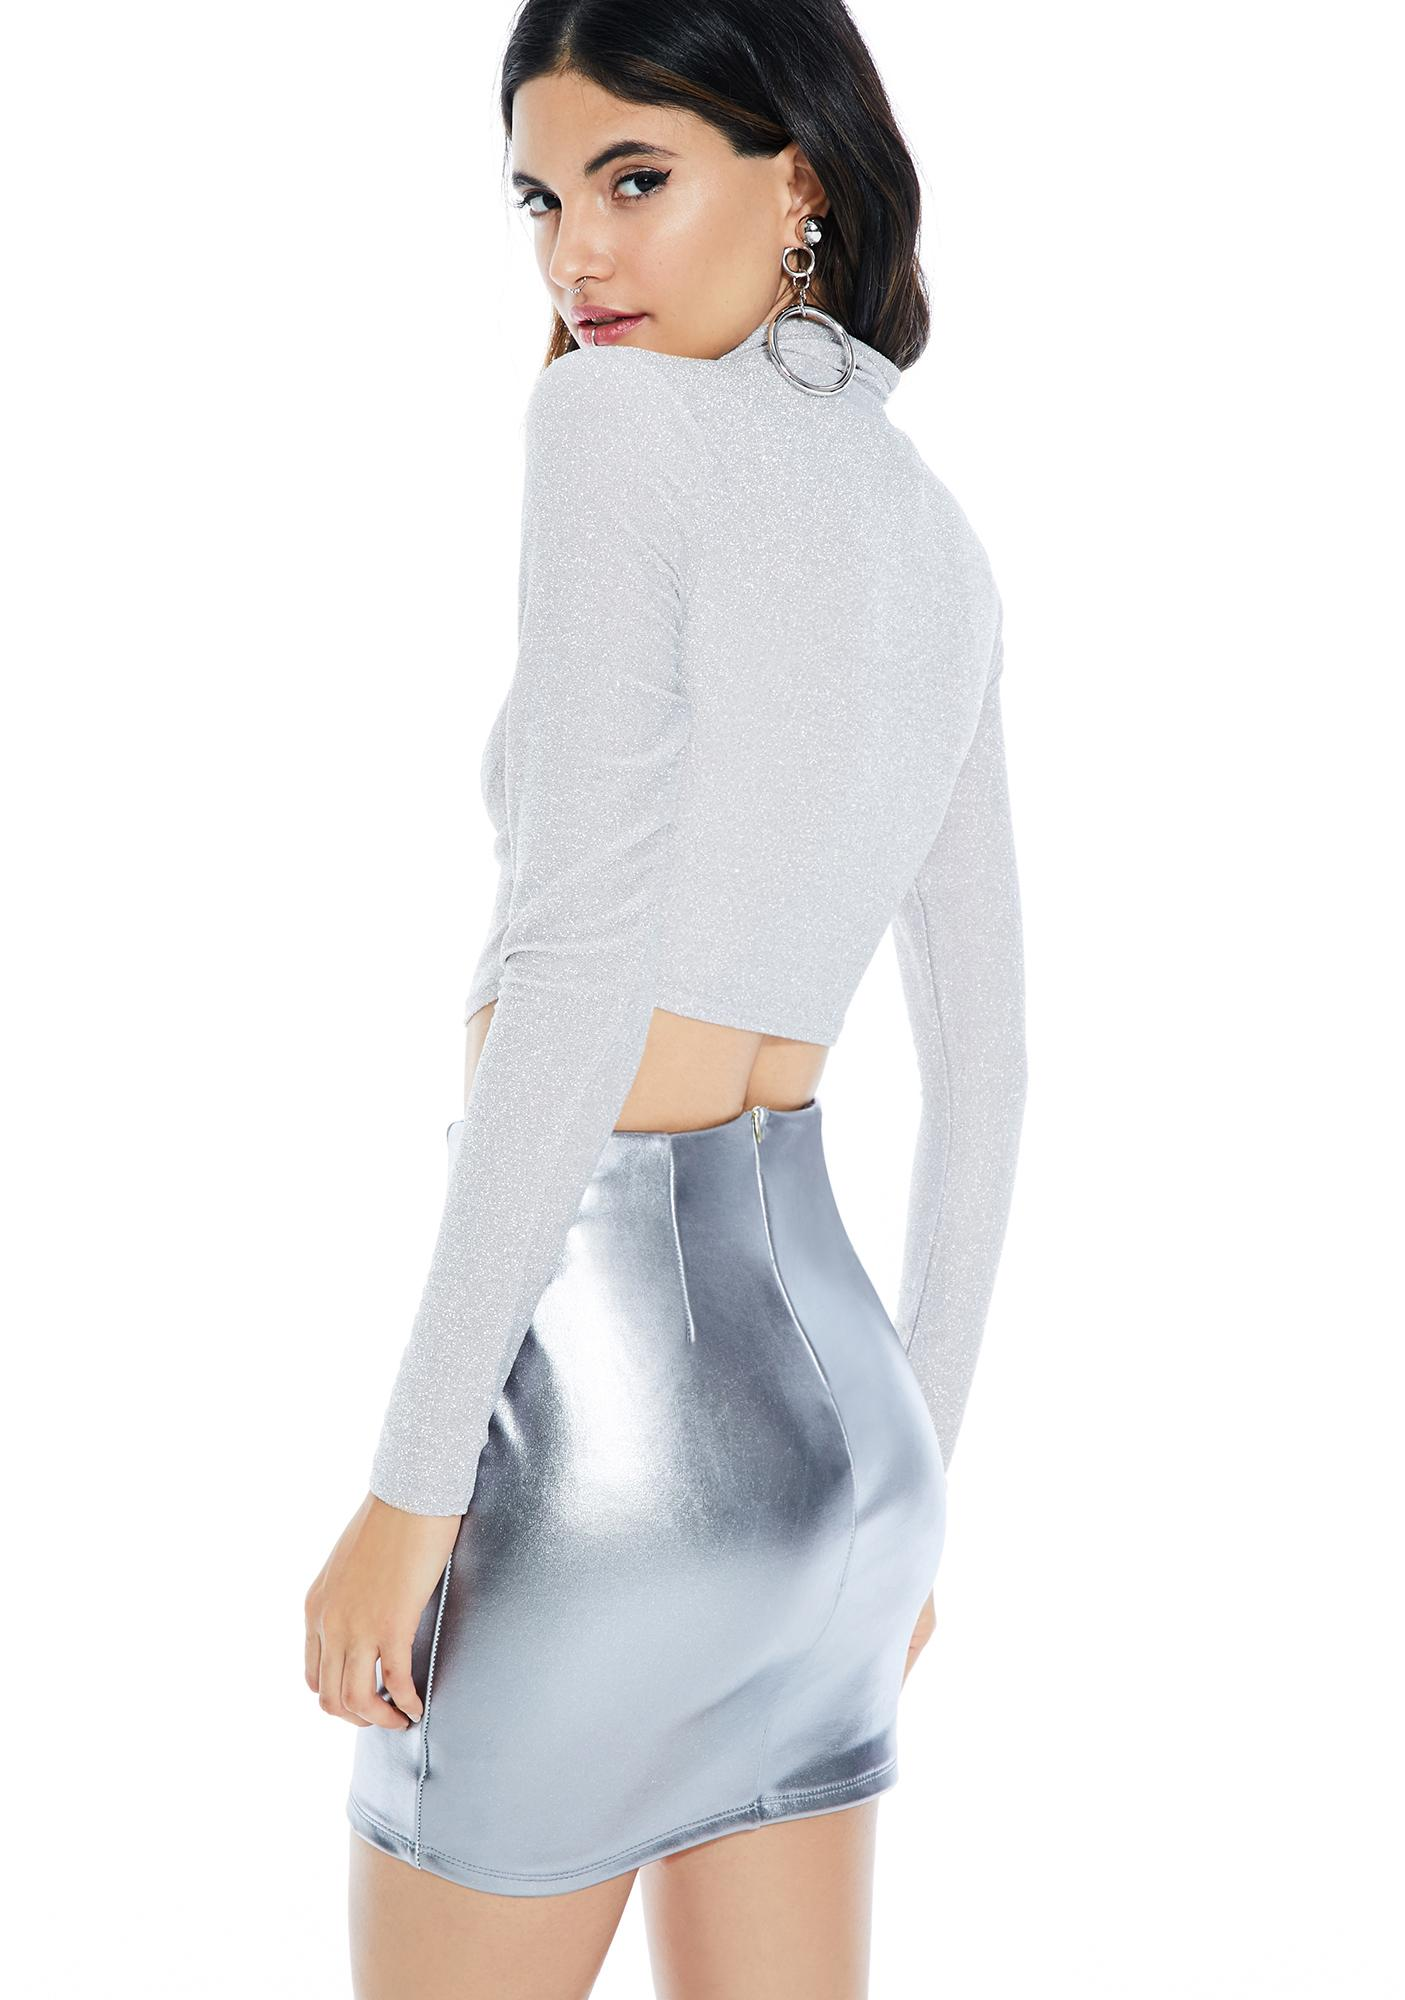 Silver Screens Glittery Crop Top